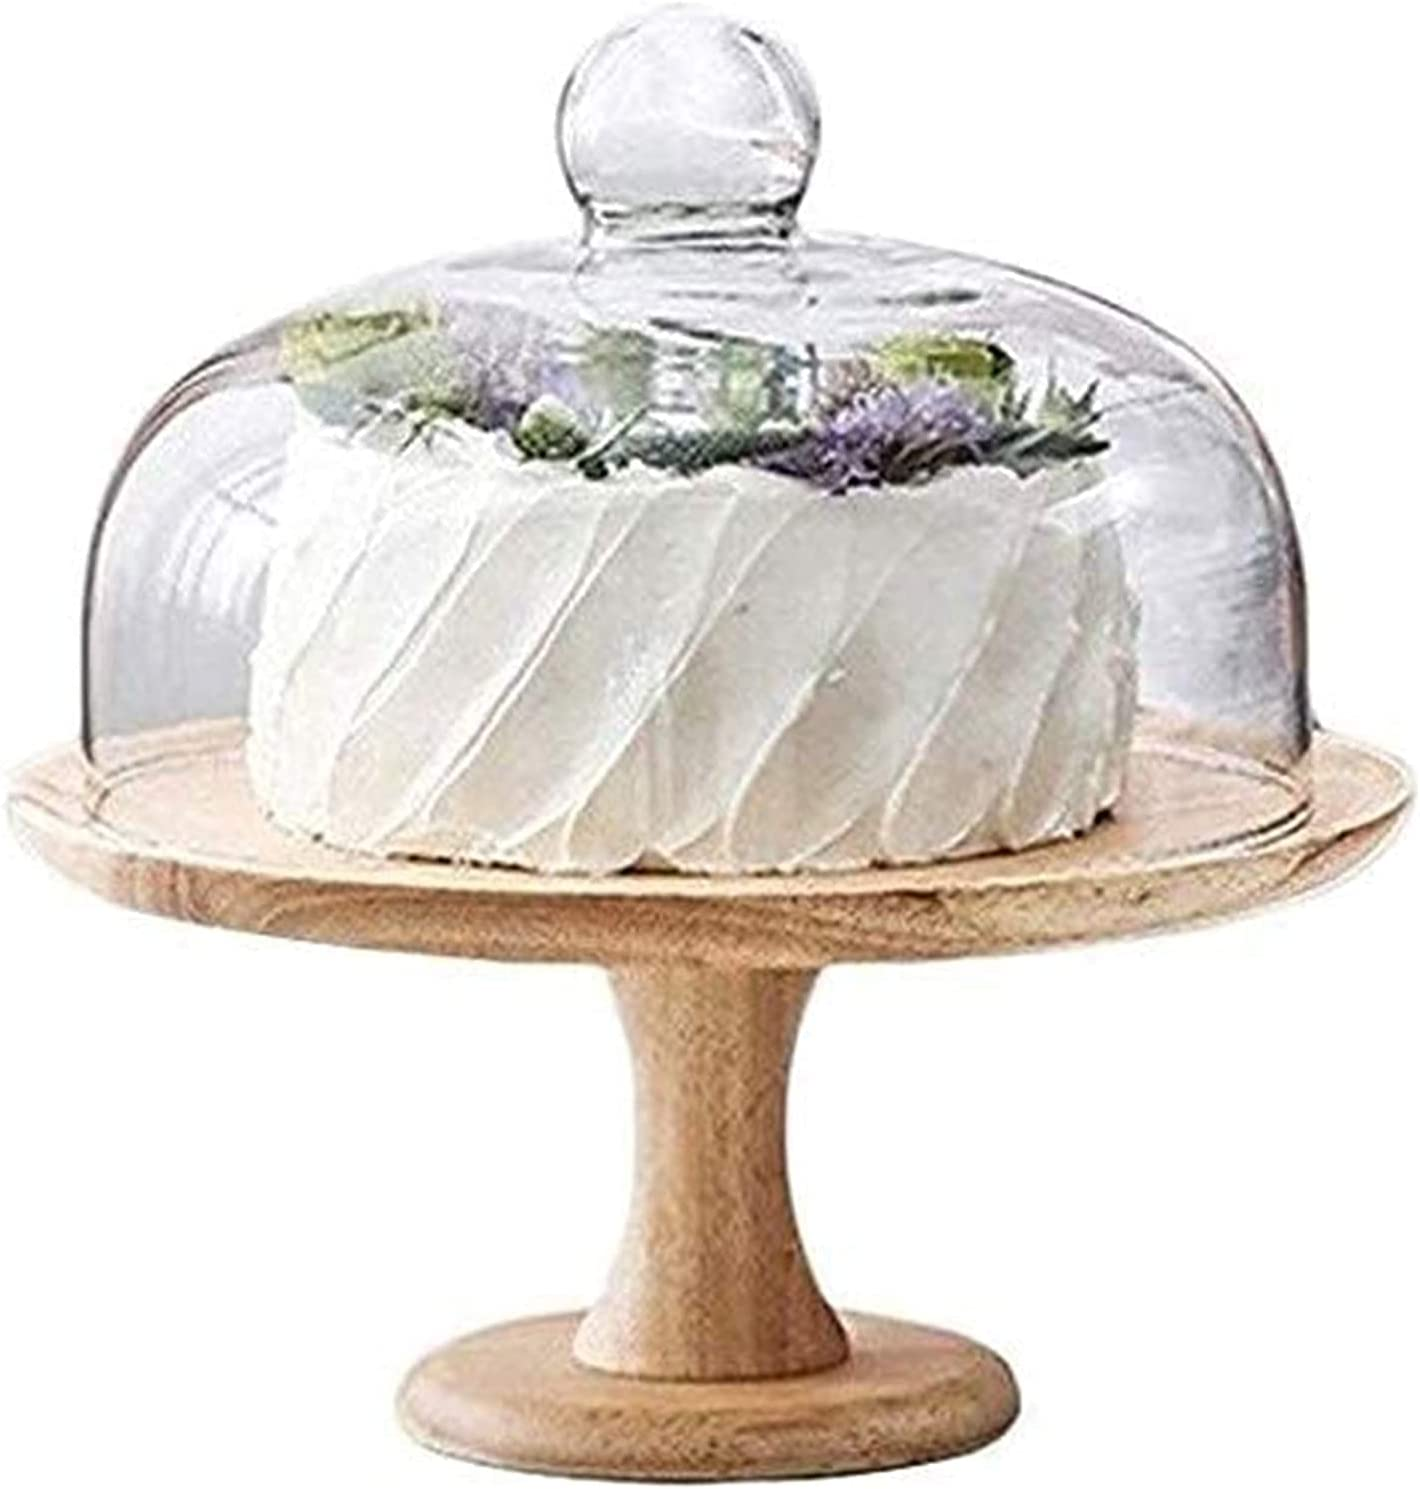 Cake Max 81% OFF Stand with Dome Multi-Functional Holder St Salad Home Save money